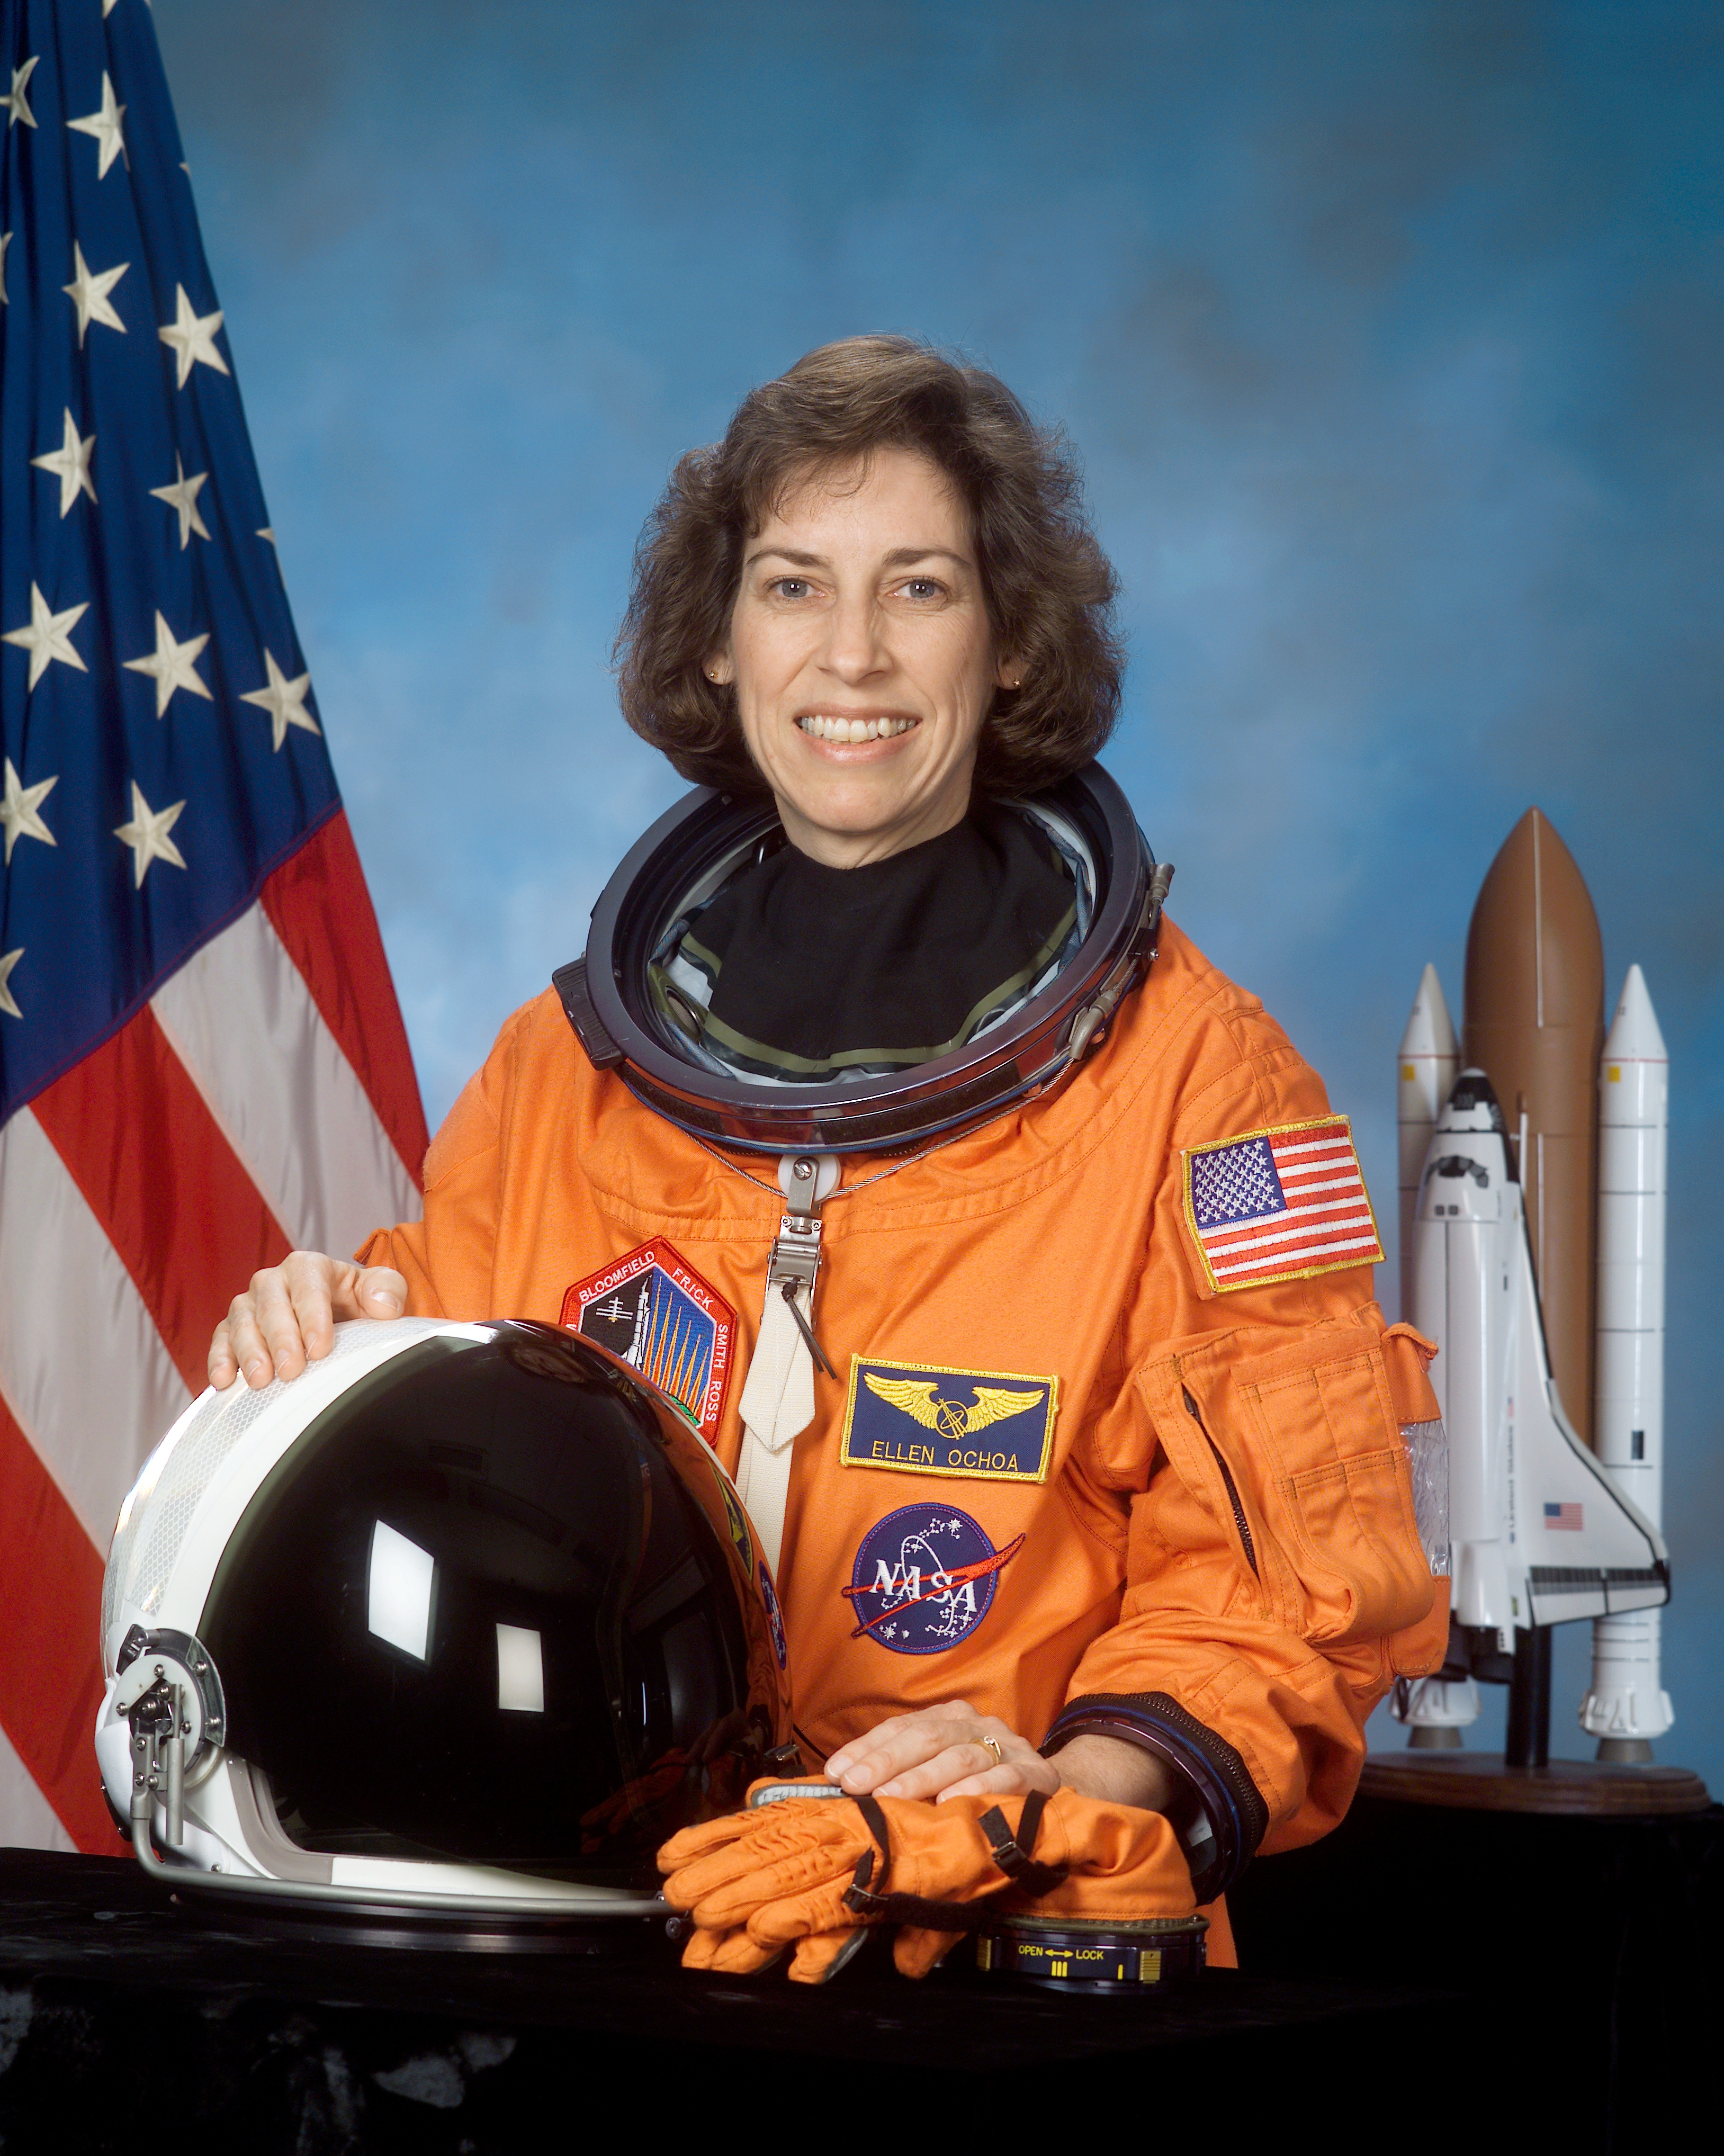 An engineer and veteran astronaut with four space flights under her belt, Ellen Ochoa is the current director of the Johnson Space Center. She became the world's first Hispanic female astronaut in 1991 and is currently the center's first Hispanic director. She has been recognized by NASA with its highest award, the Distinguished Service Medal, and the Presidential Distinguished Rank Award for senior executives in the federal government.